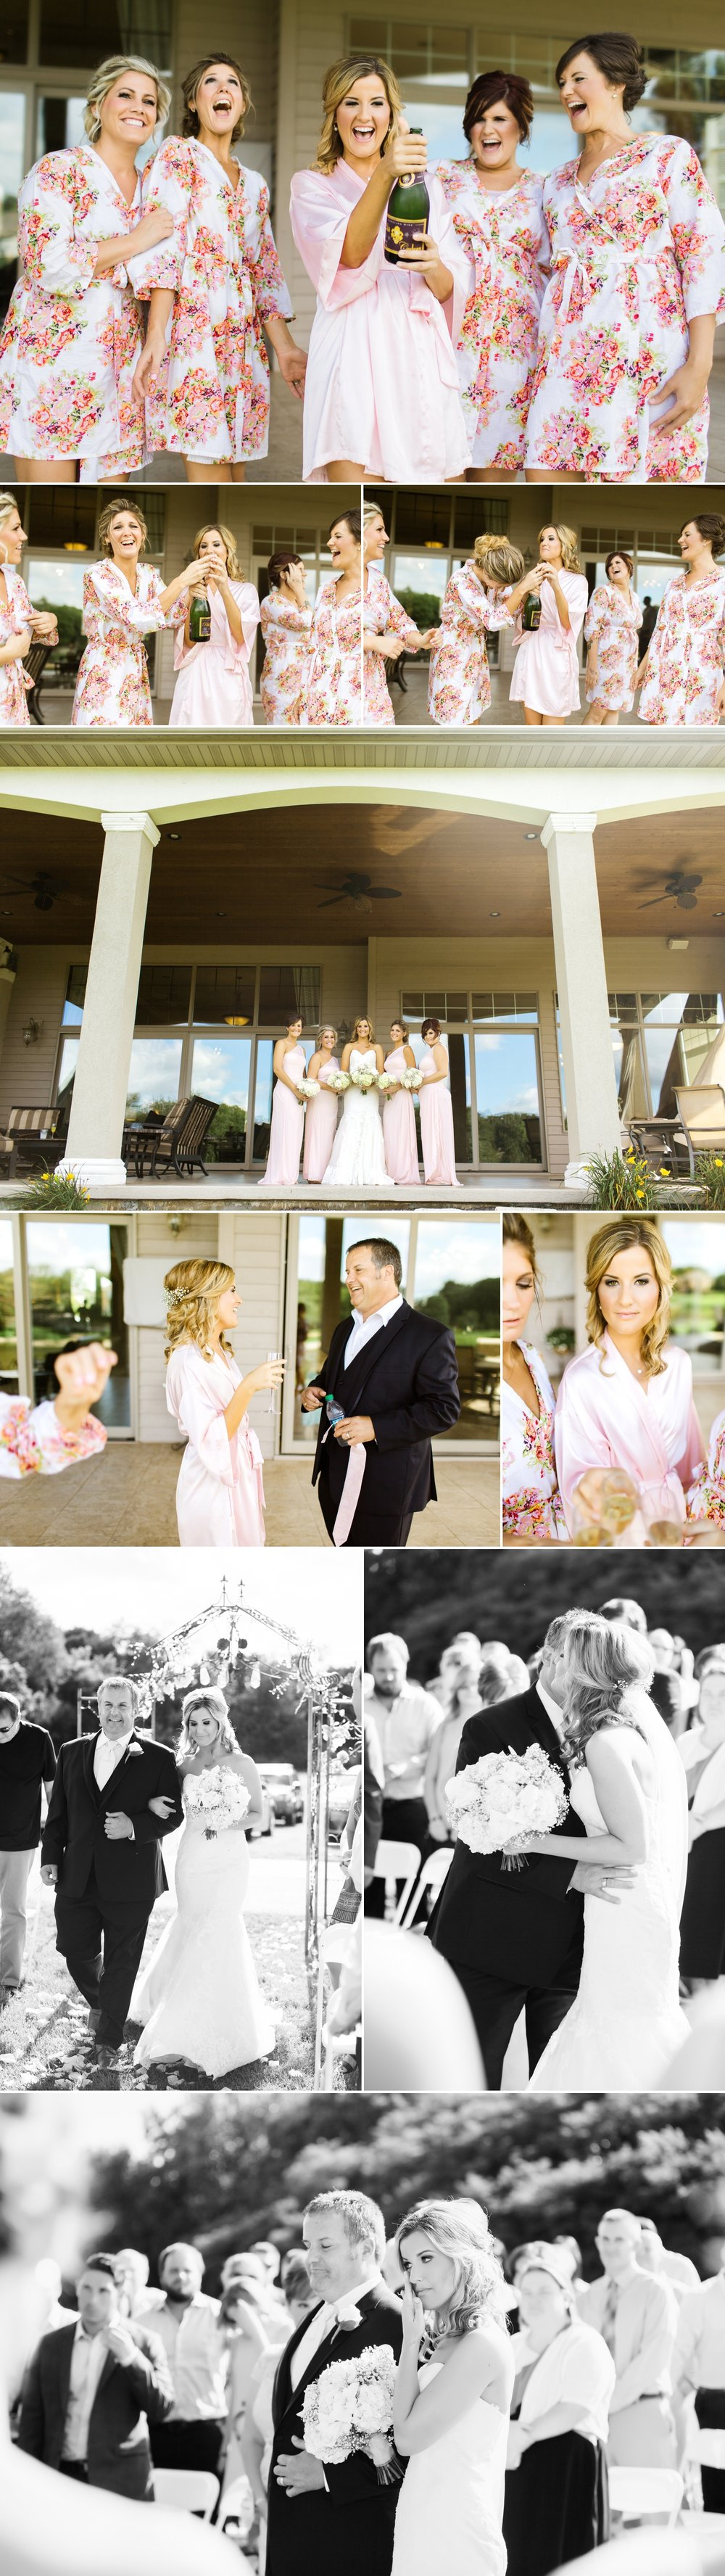 Mr. and Mrs. Flower Collage 4.jpg